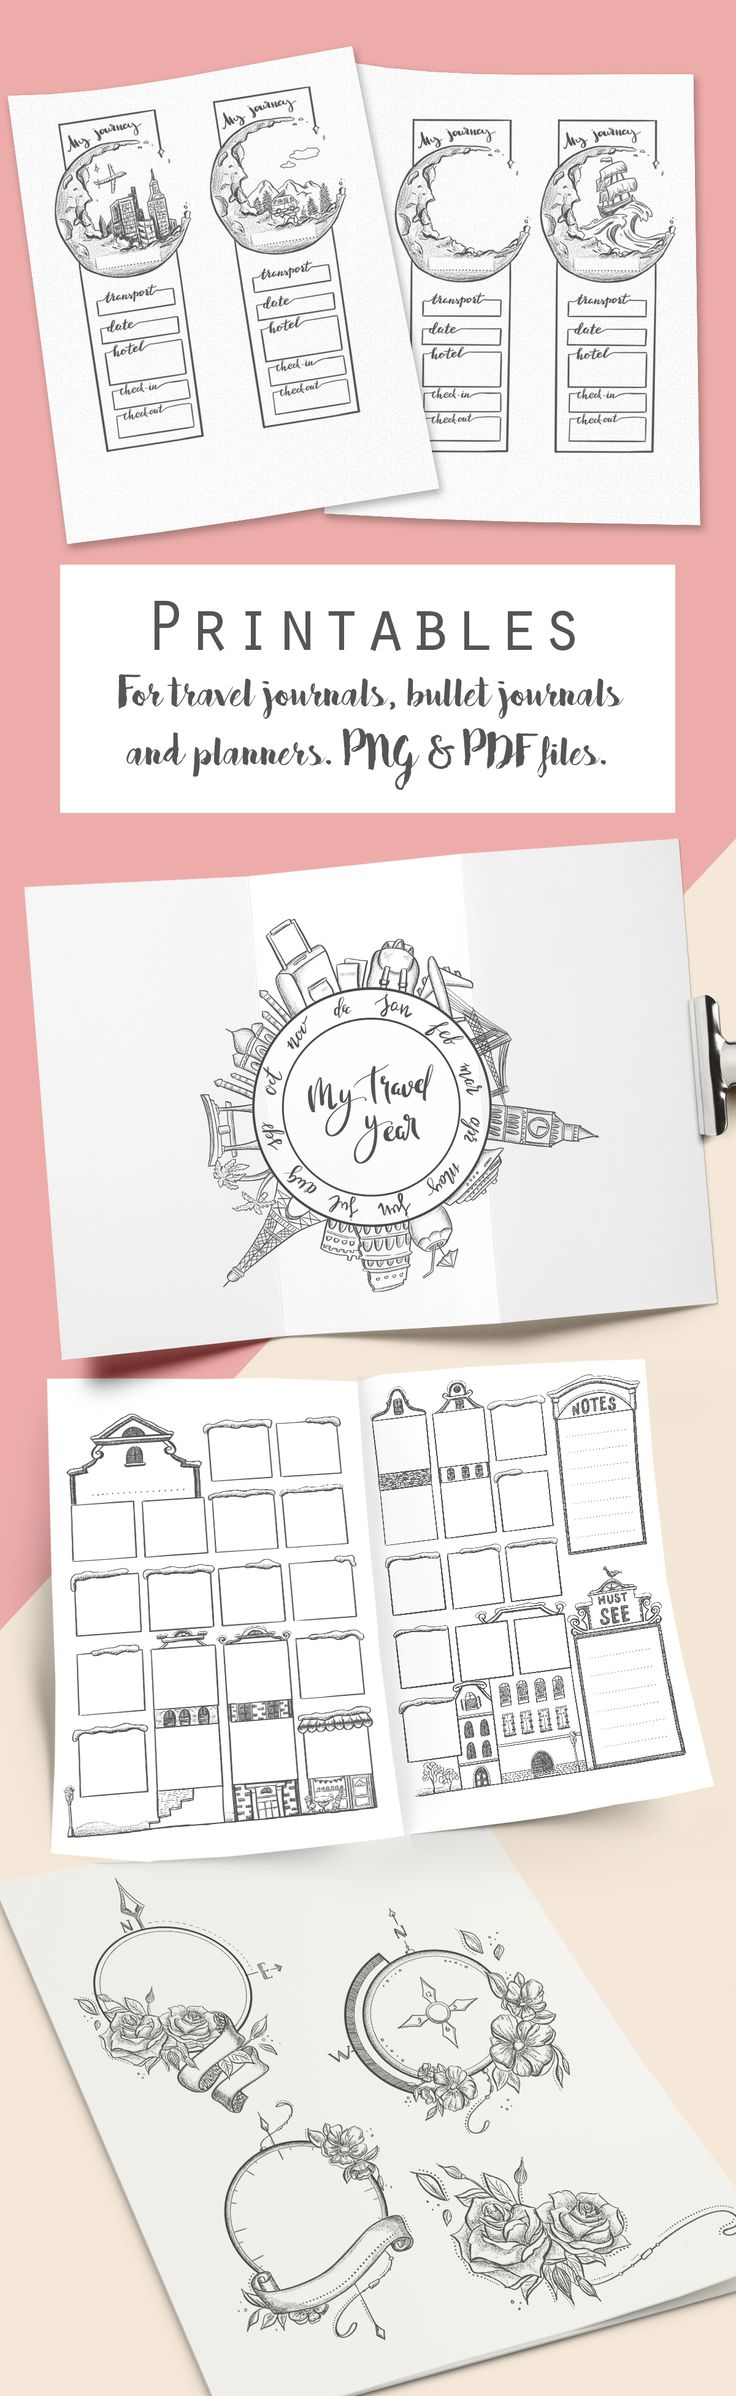 A bunch of travel related printables for your journals. Png and pdf files available. #printable #printables #bulletjournaling #bulletjournal #traveljournal